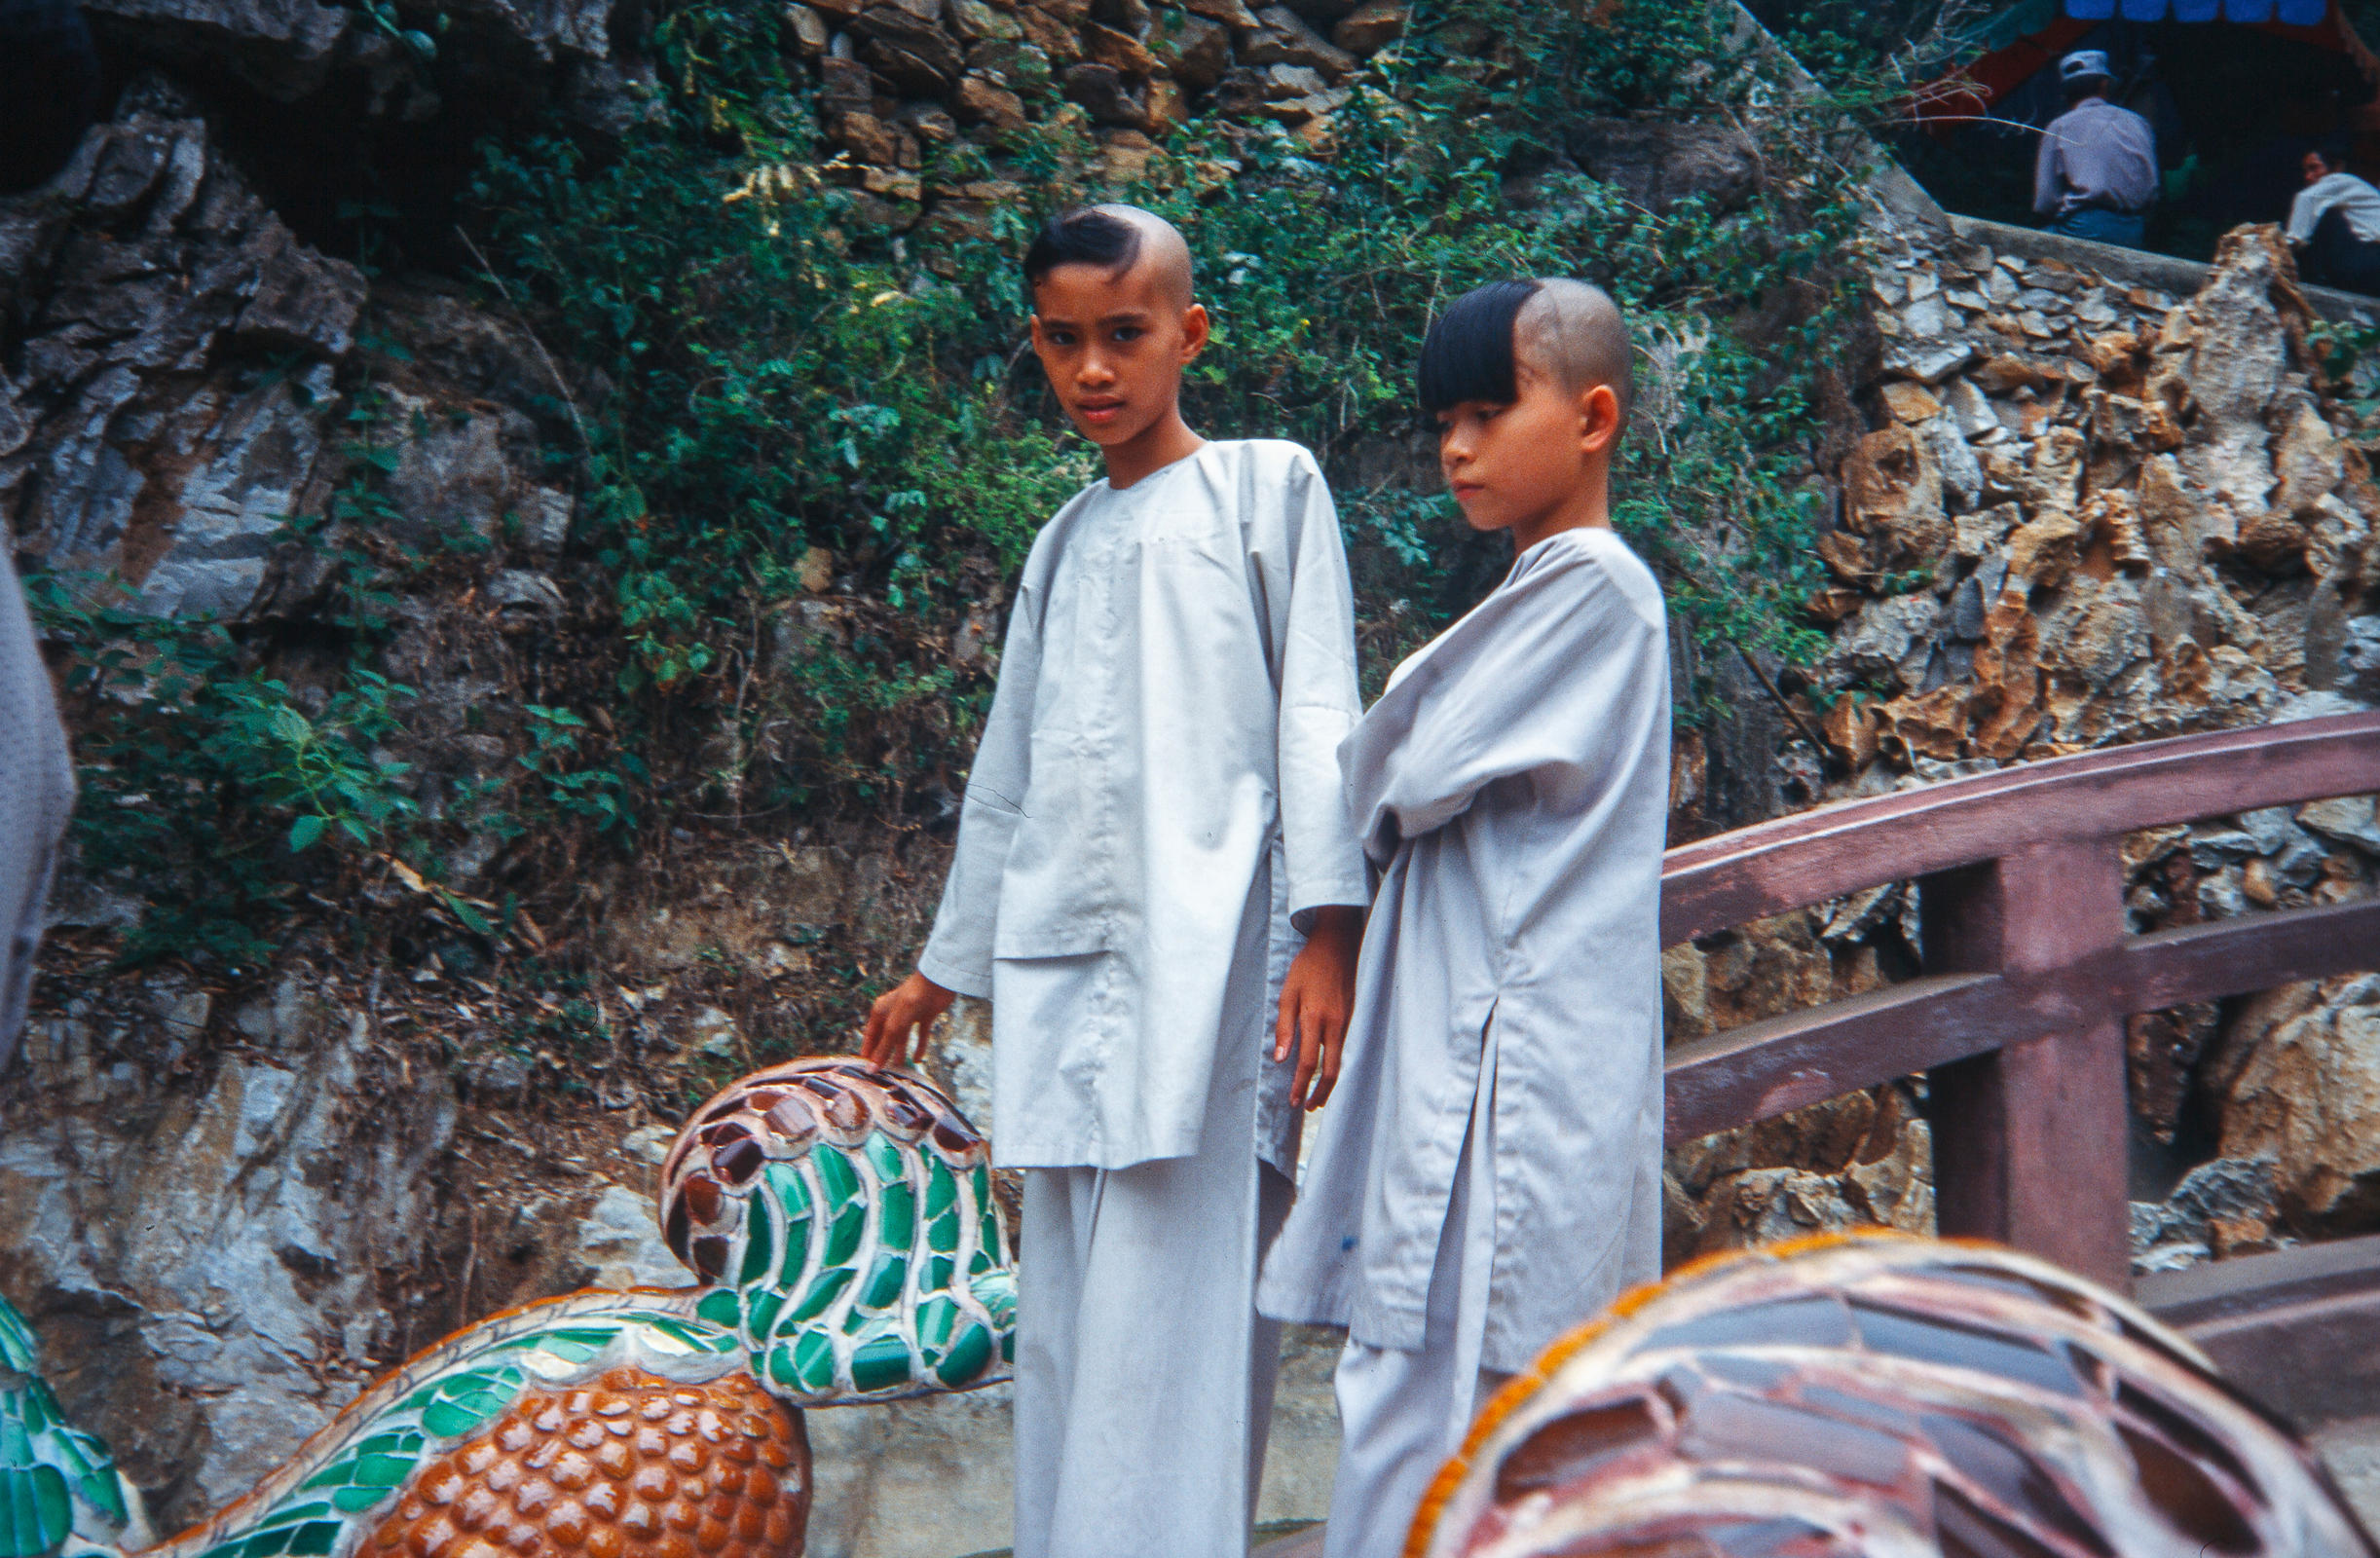 Young monks. Marble Mountains. Vietnam.